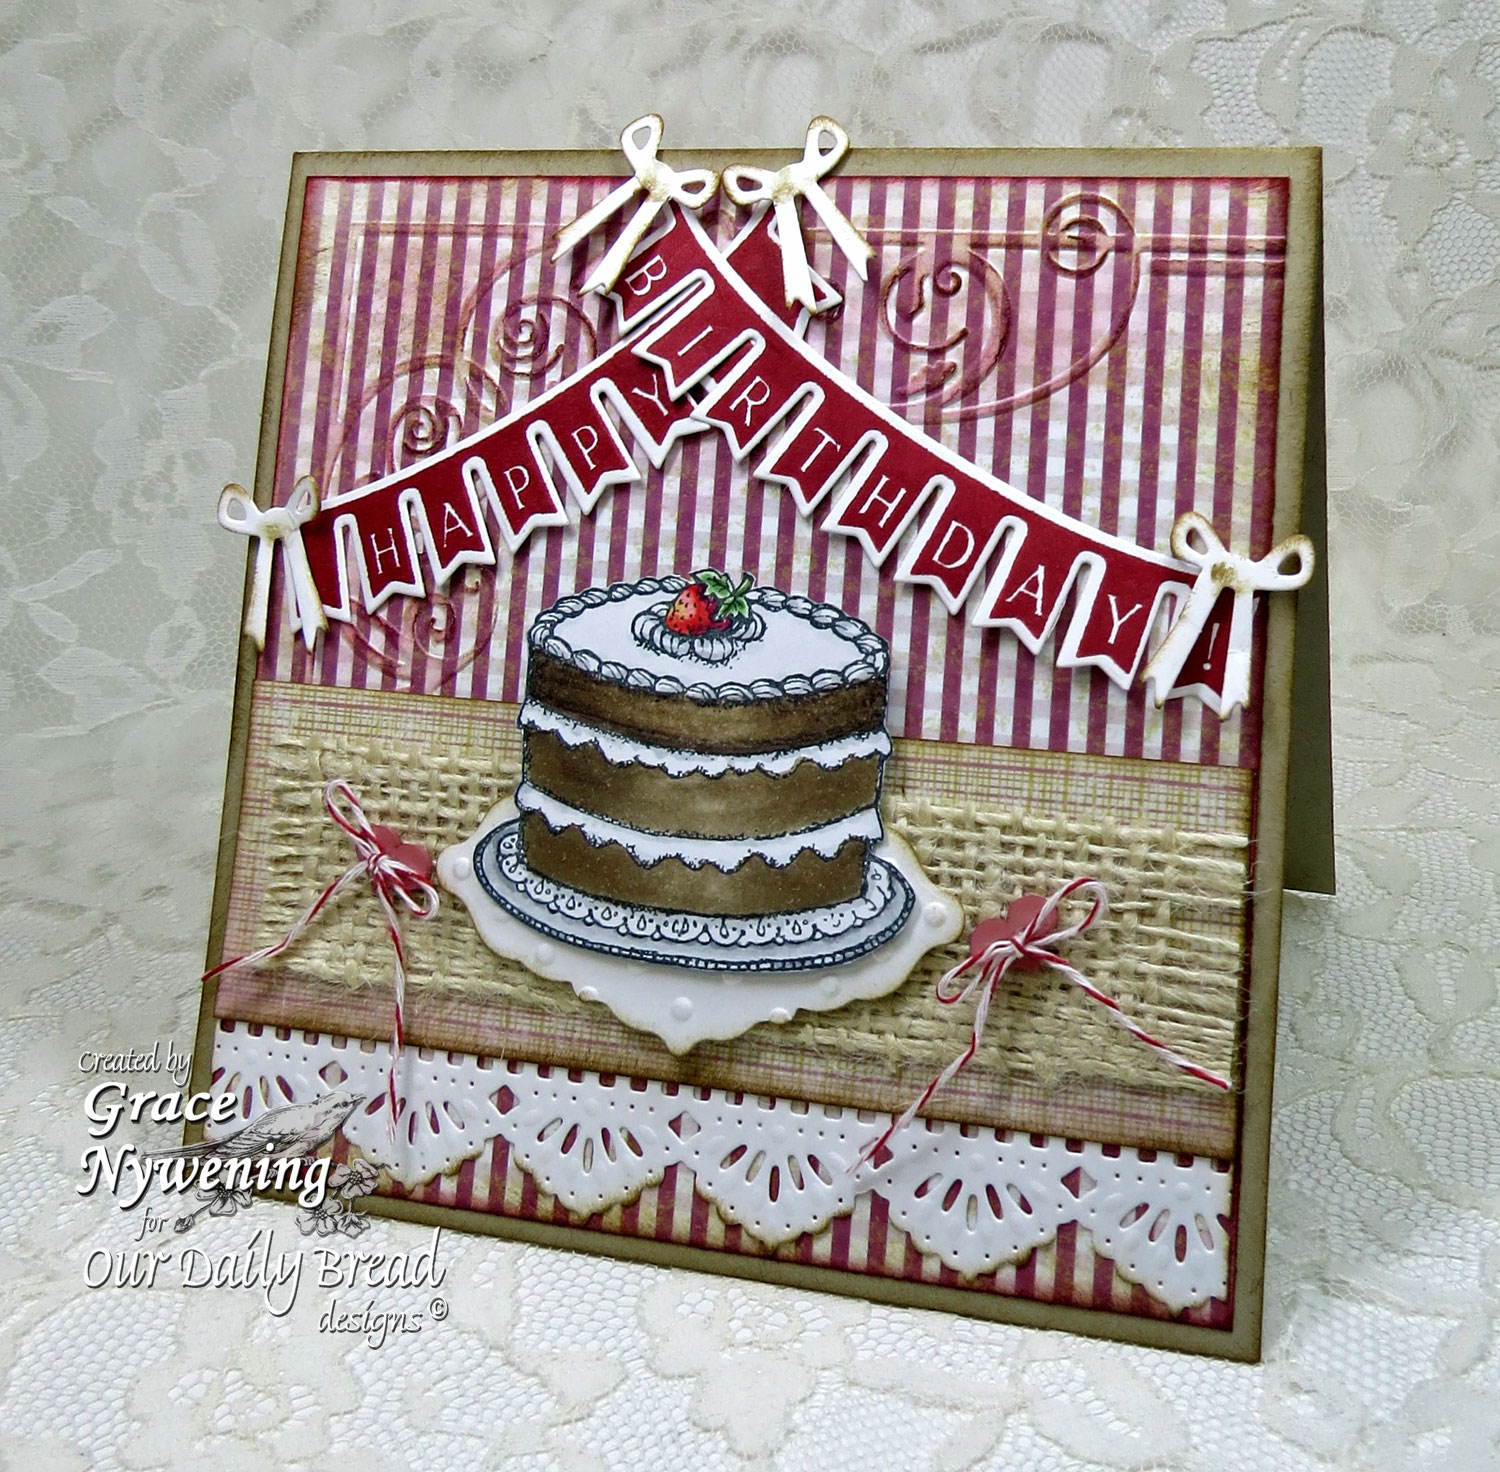 Stamps - Our Daily Bread Designs Pennant Swag 2, Cake Single, ODBD Custom Pennant Swag Die, ODBD Custom Beautiful Borders Dies, ODBD Custom Ornate Borders and Flowers Die, ODBD Rustic Beauty Paper Collection